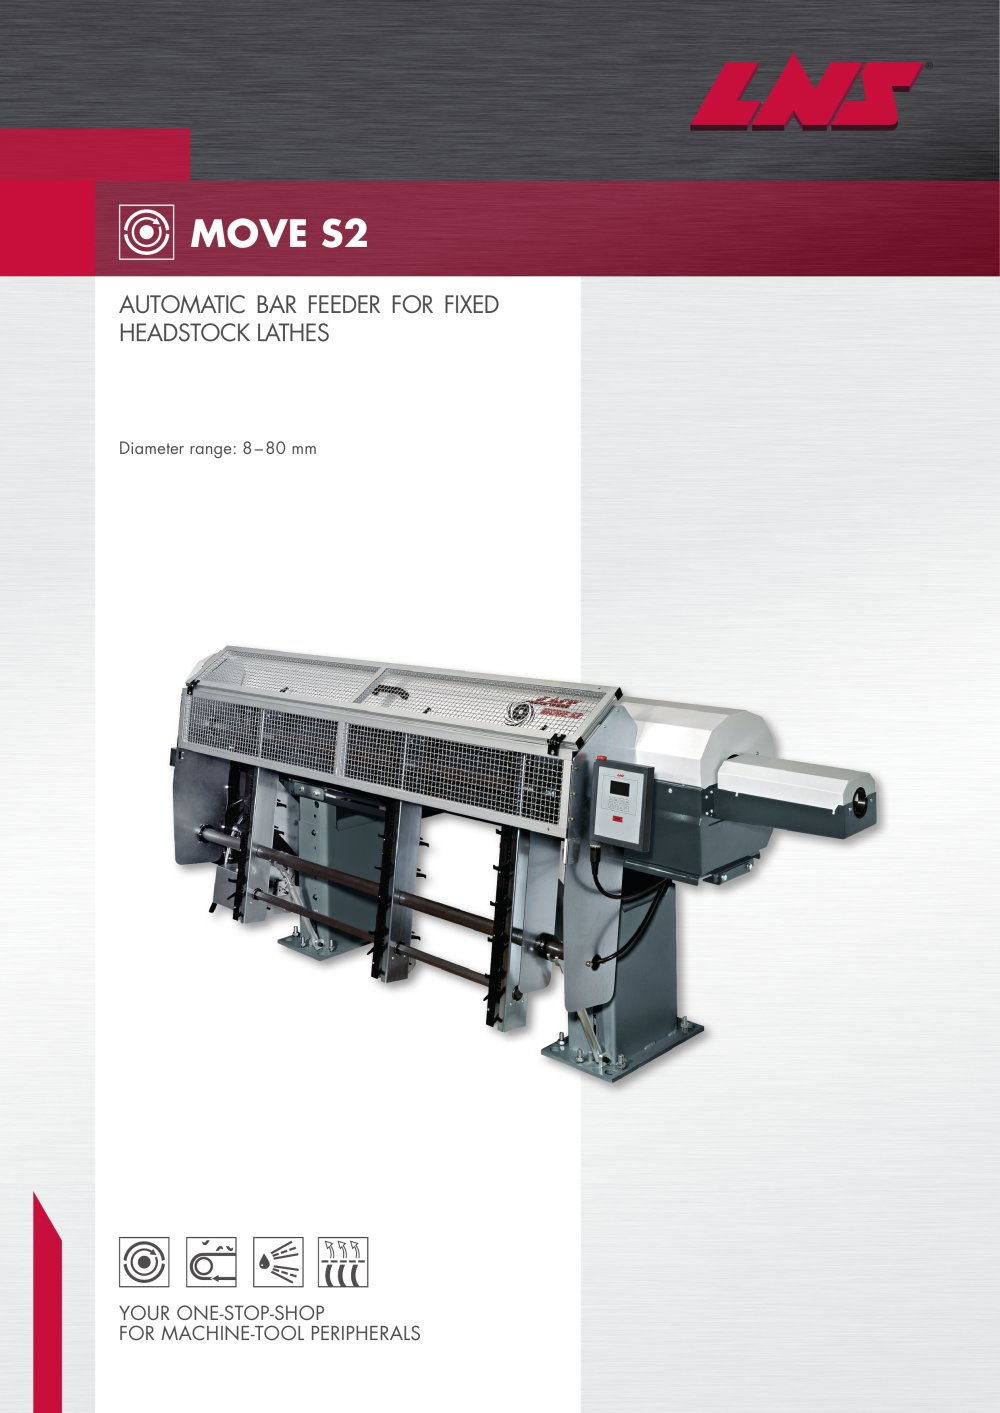 Move S2 - 1 / 4 Pages